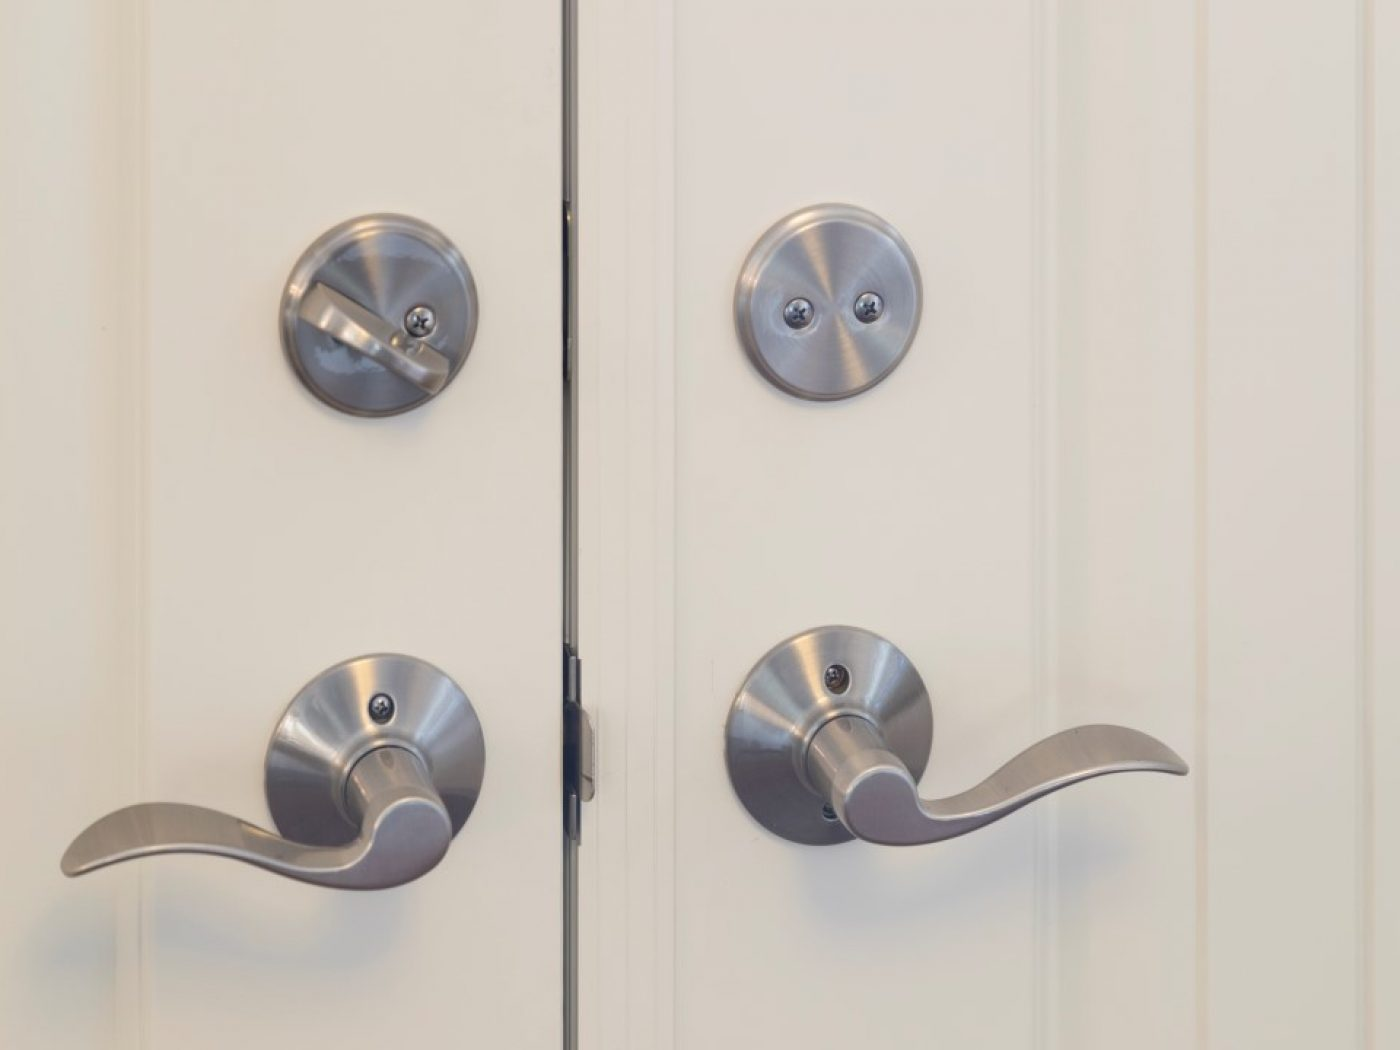 door handles on white door